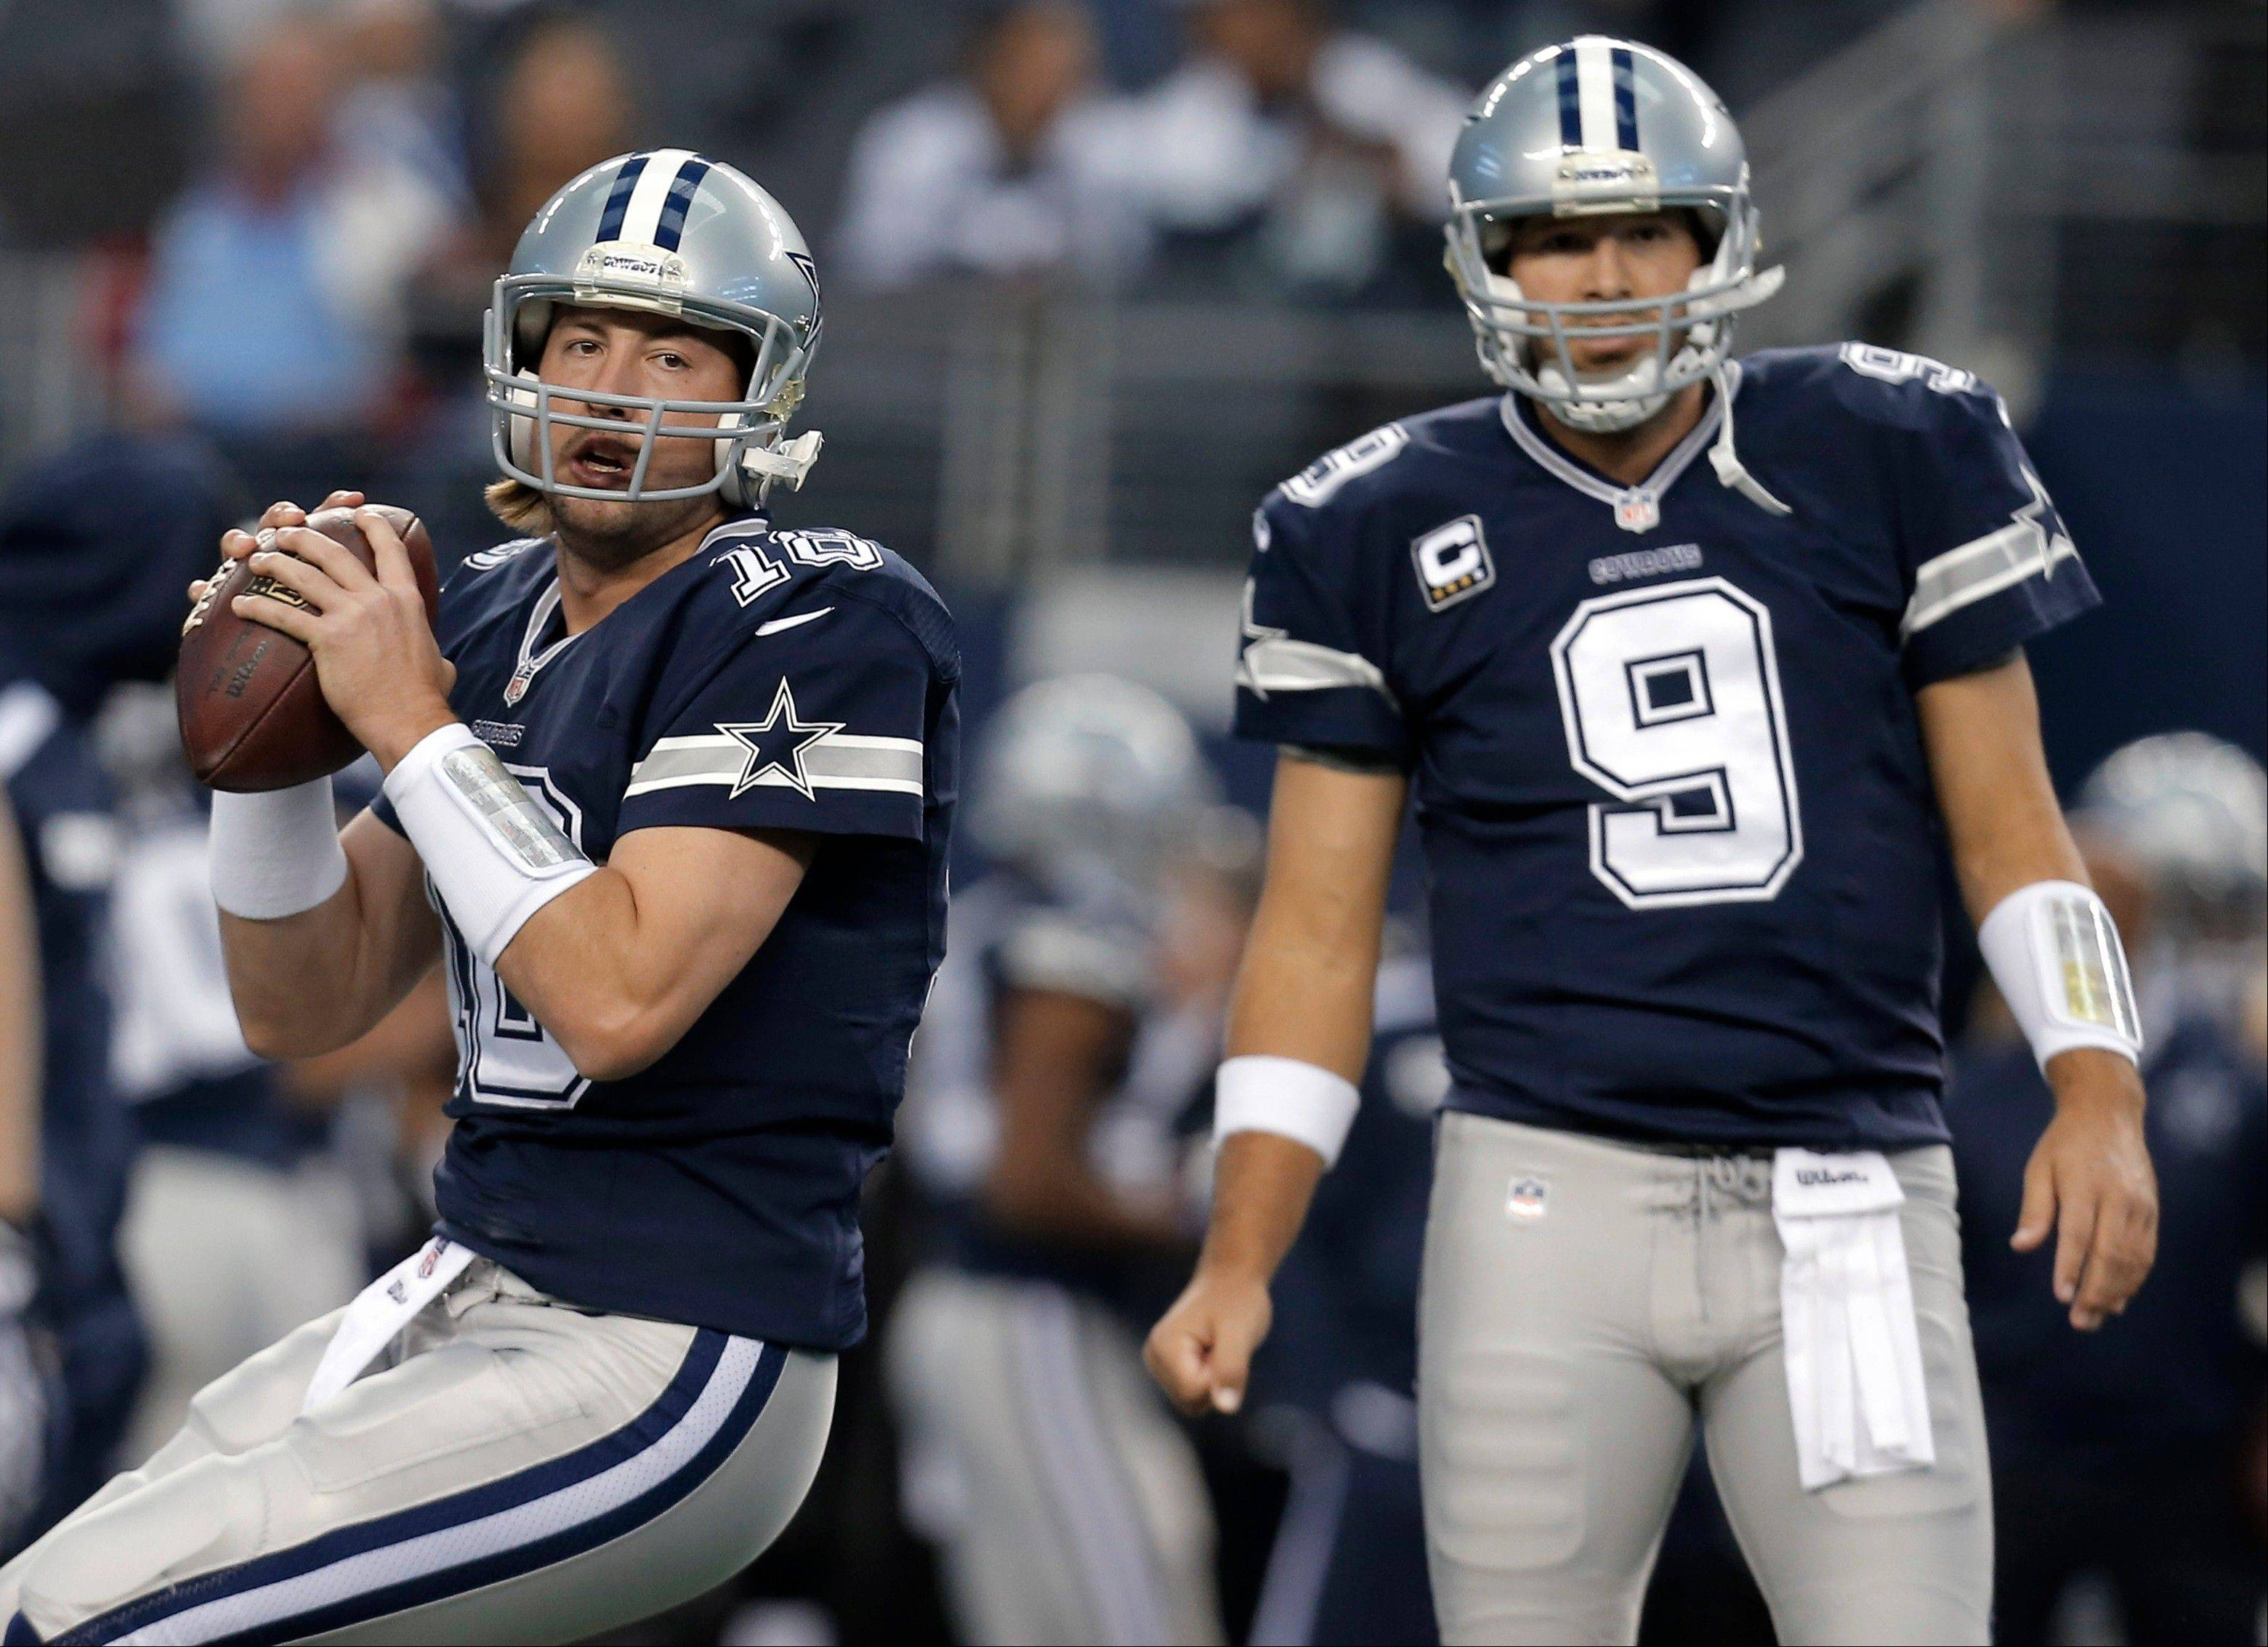 Dallas Cowboys quarterbacks Kyle Orton, left, and Tony Romo warm up for a game against the Oakland Raiders. Orton is expected to start Sunday night against Philadelphia.